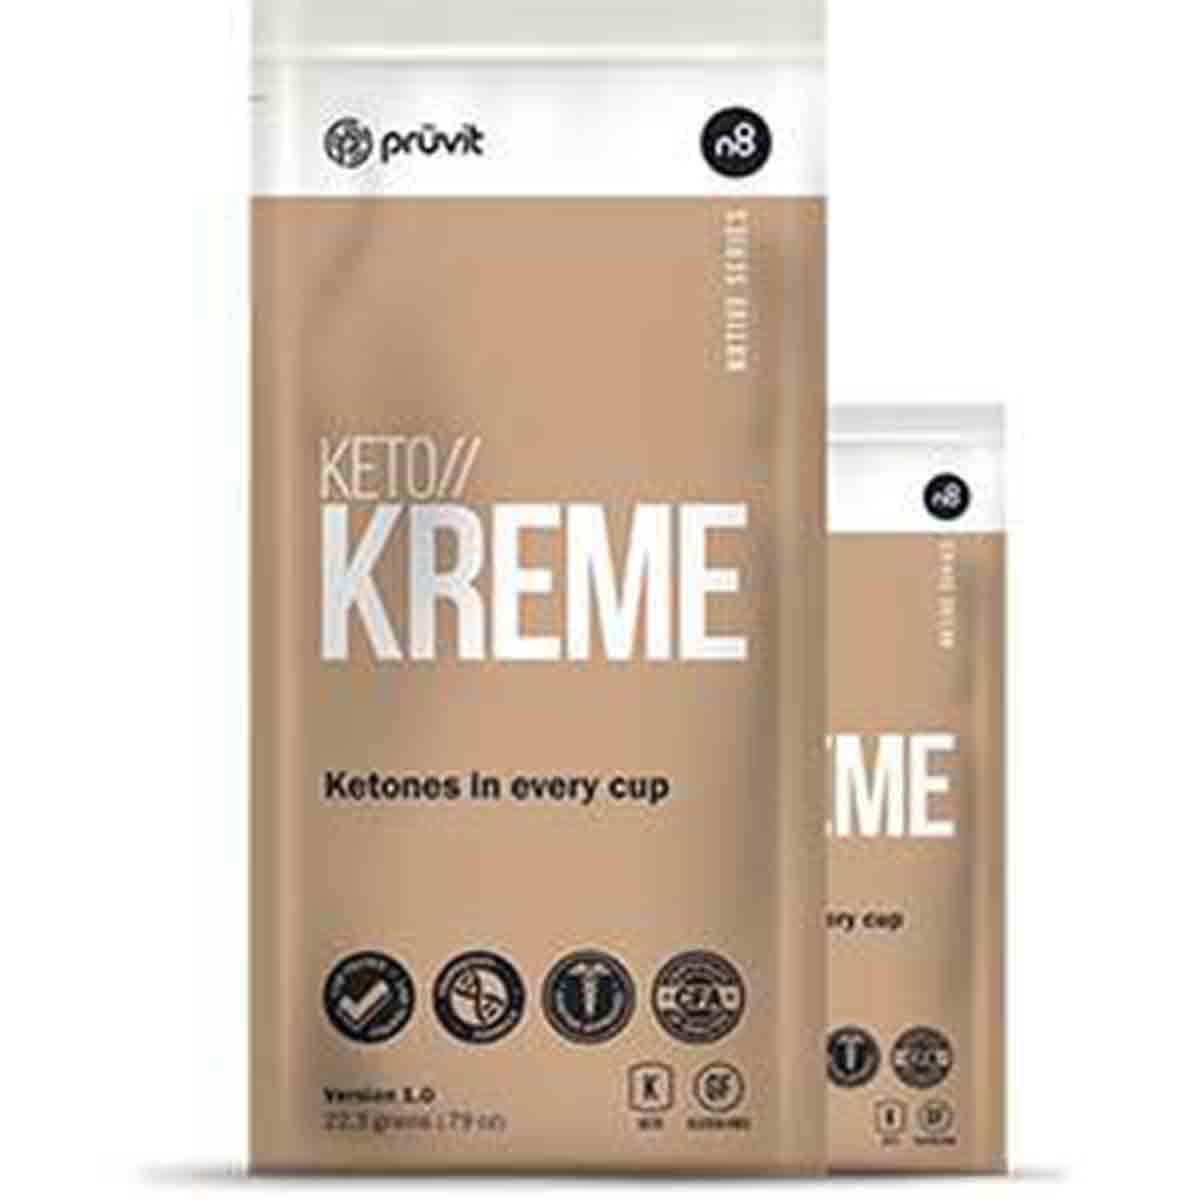 Keto Kreme Reviews: Best For People In Diet